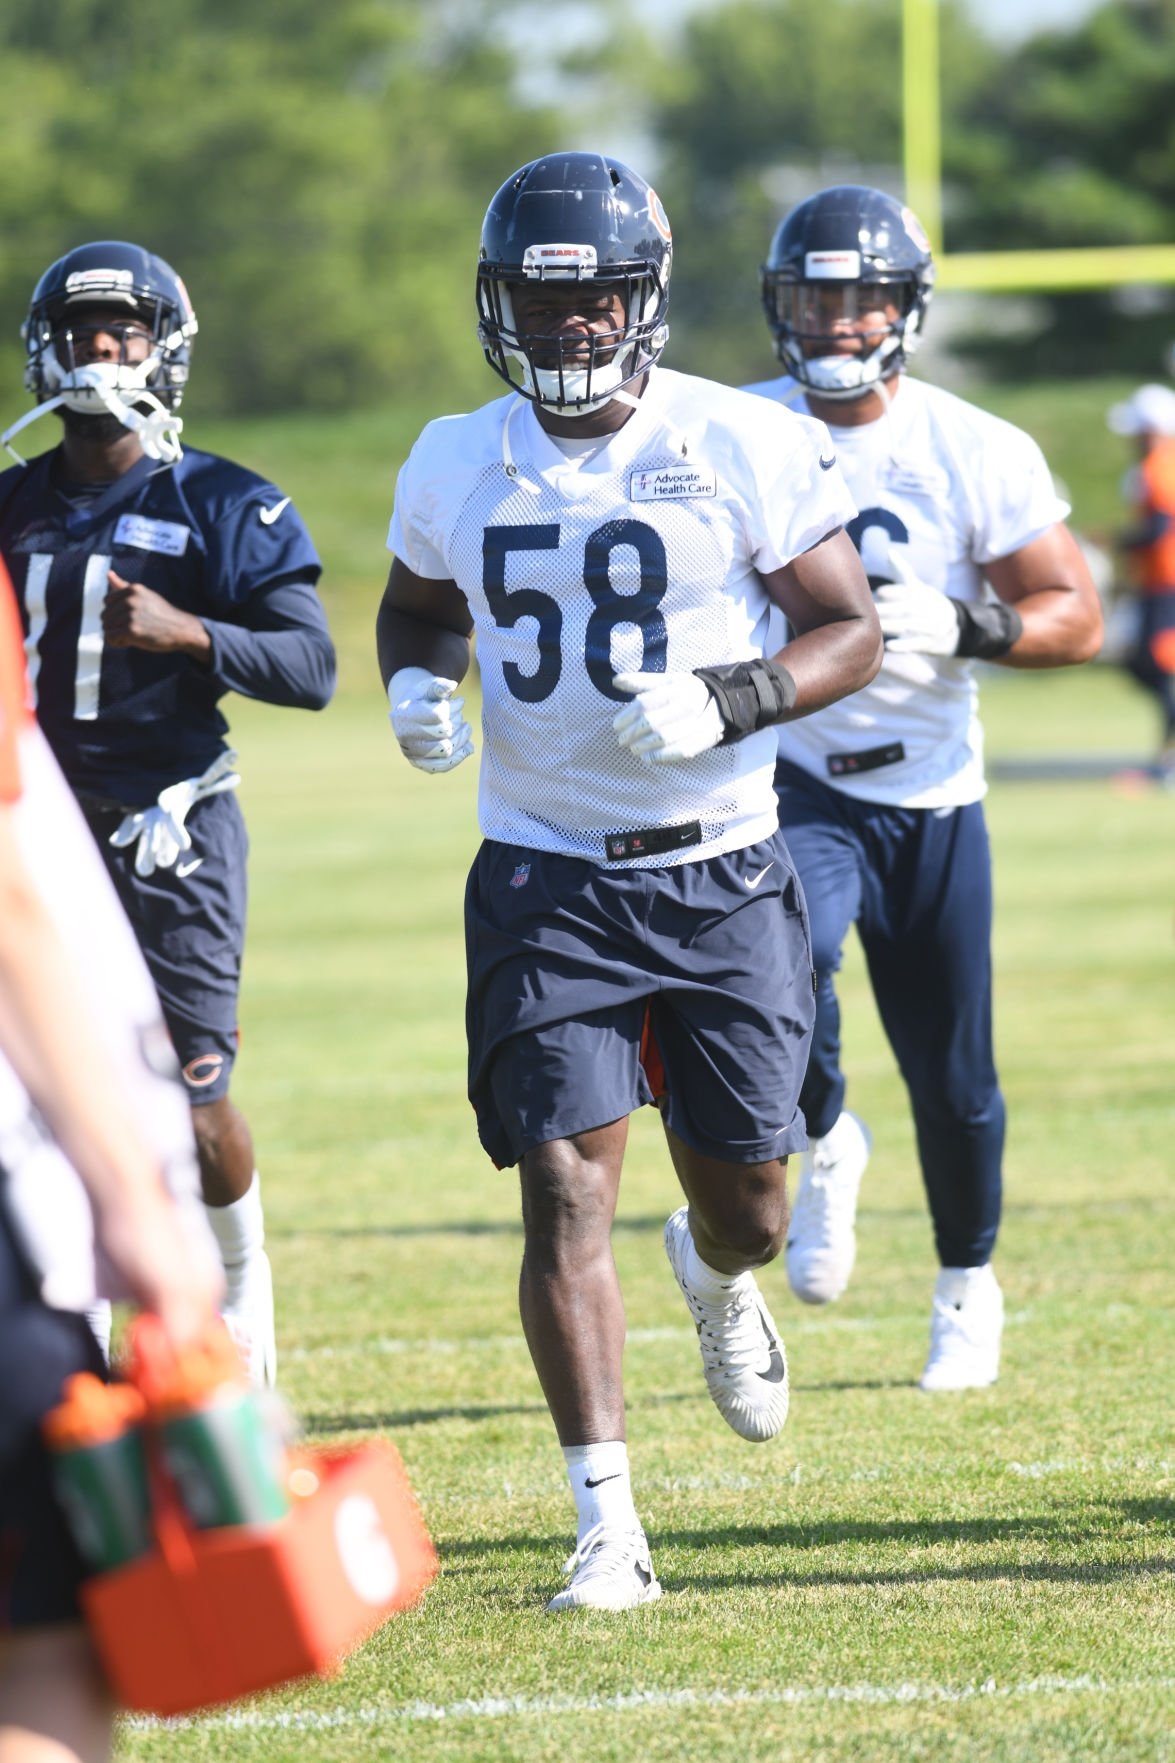 Bears Training Camp - July 30